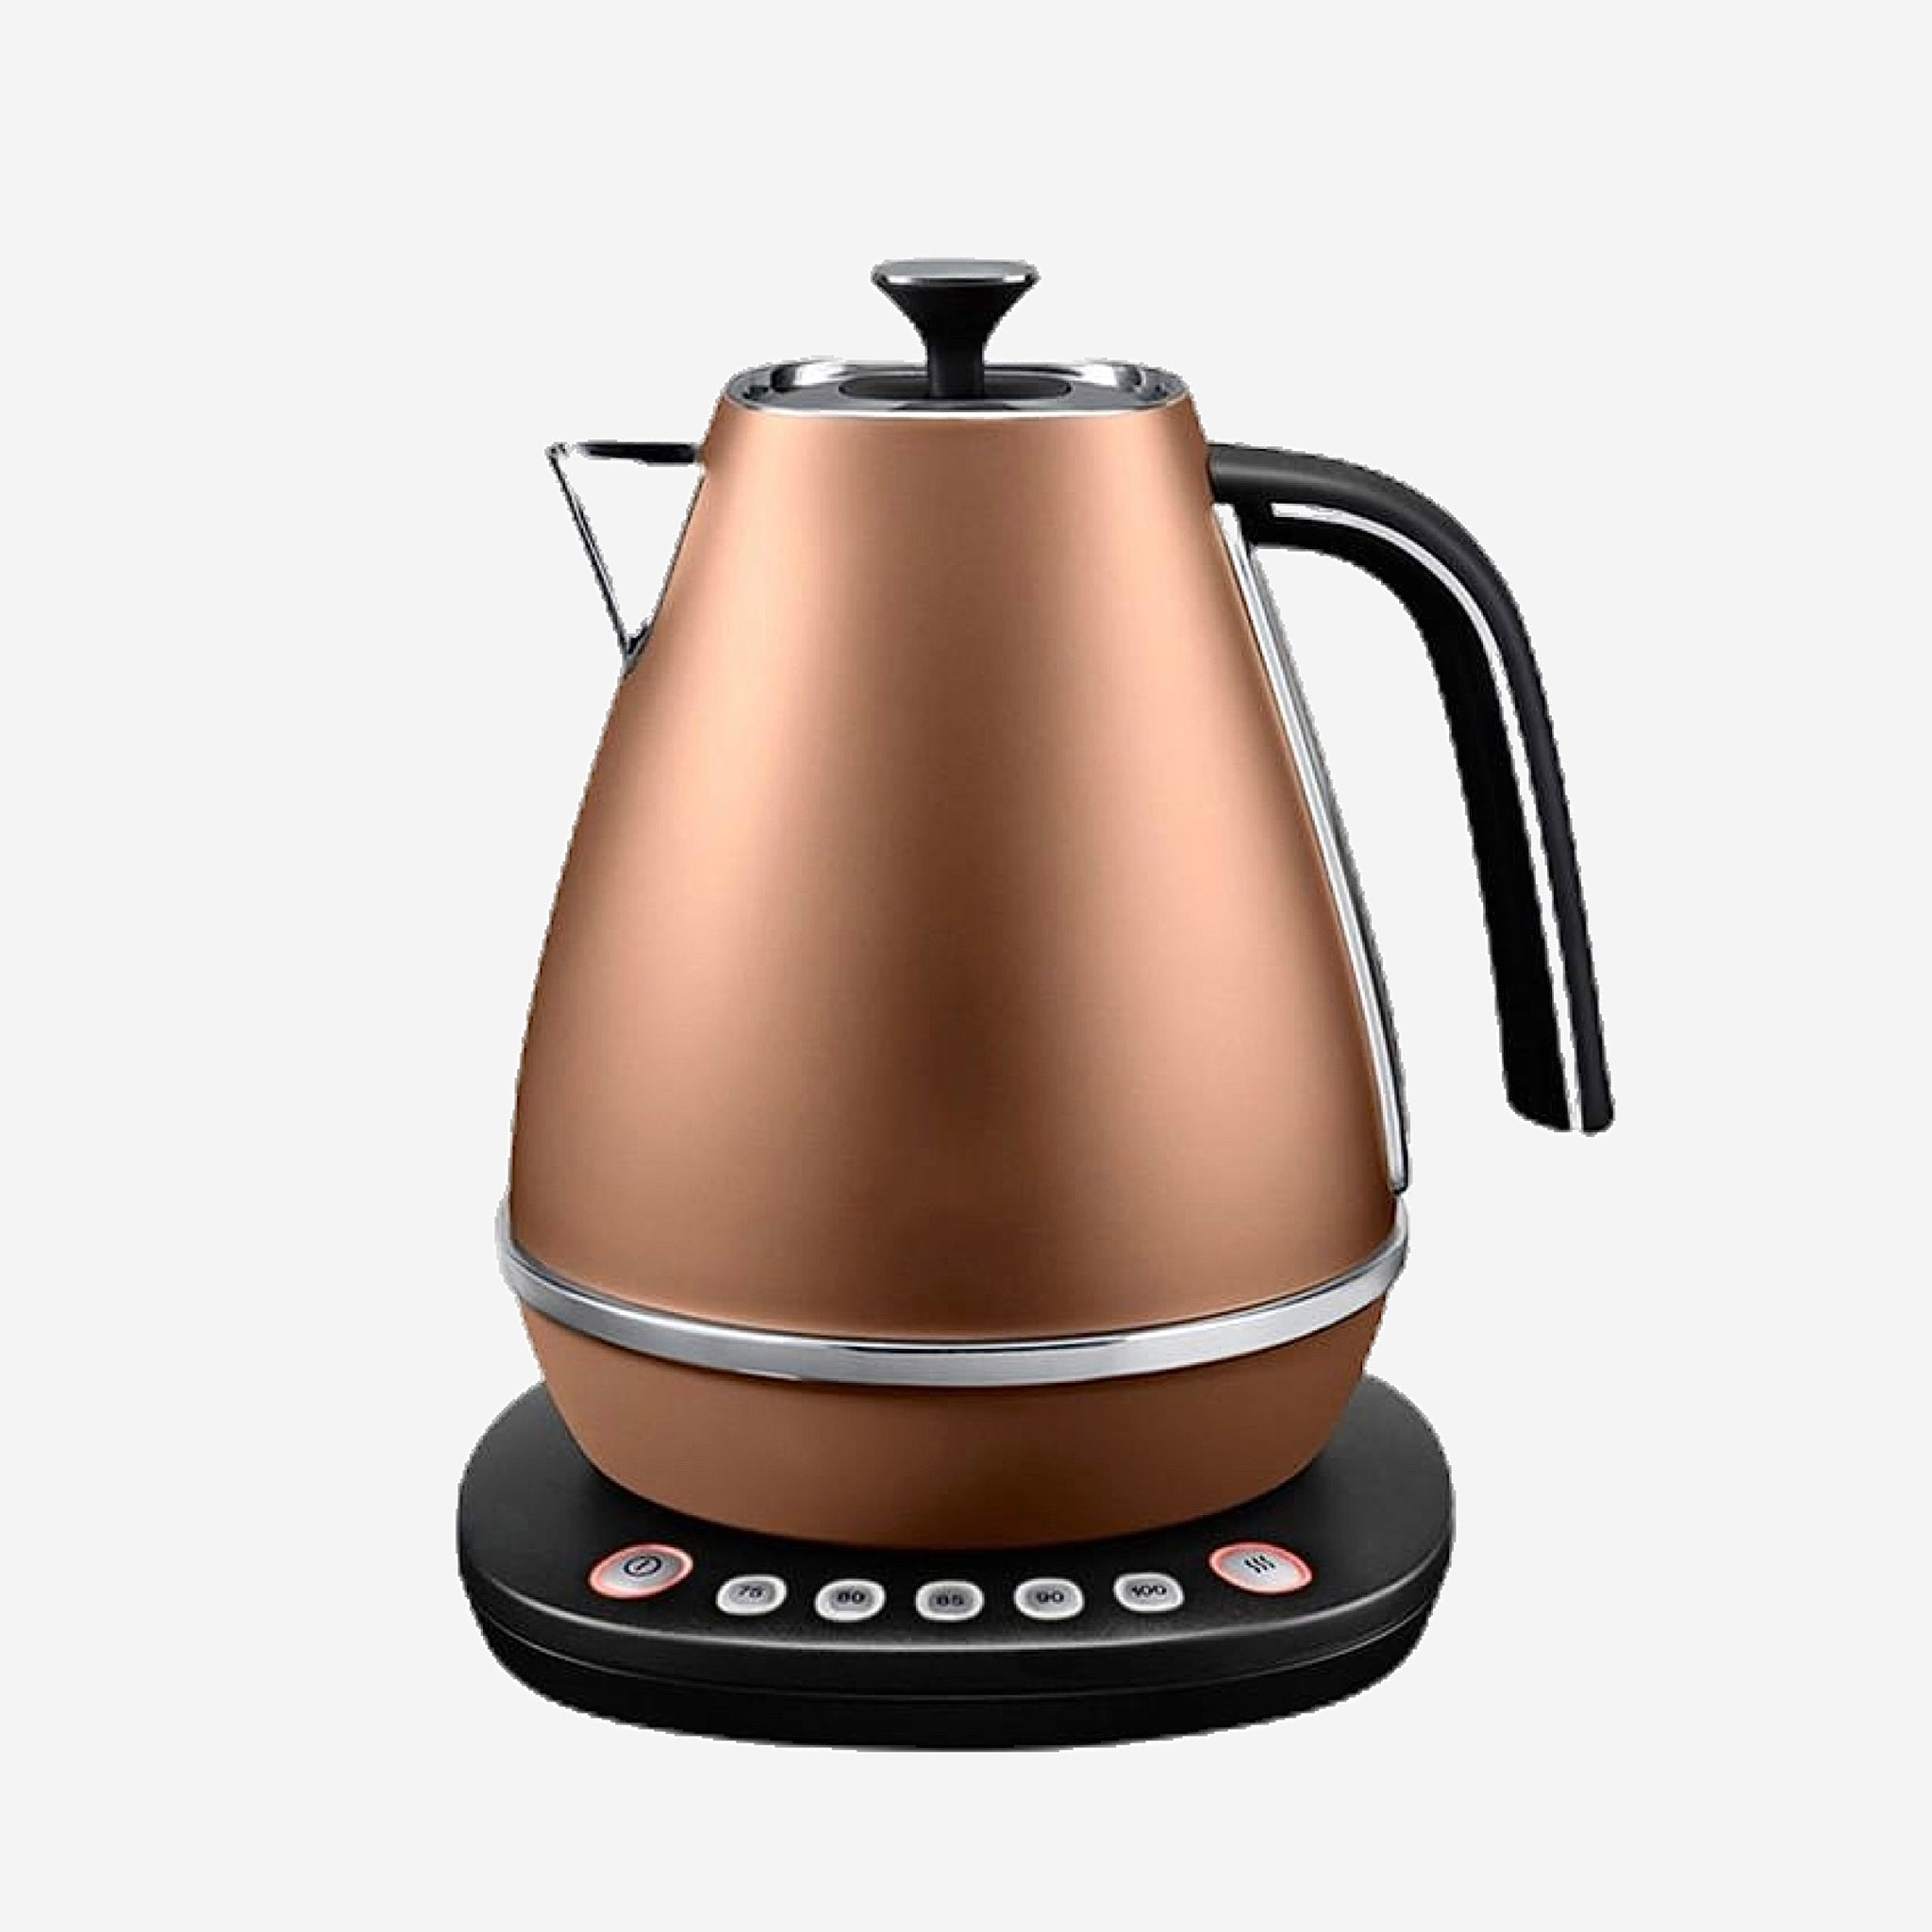 Temperature Control Electric Kettle function of the thermo-kettles old house style Trend